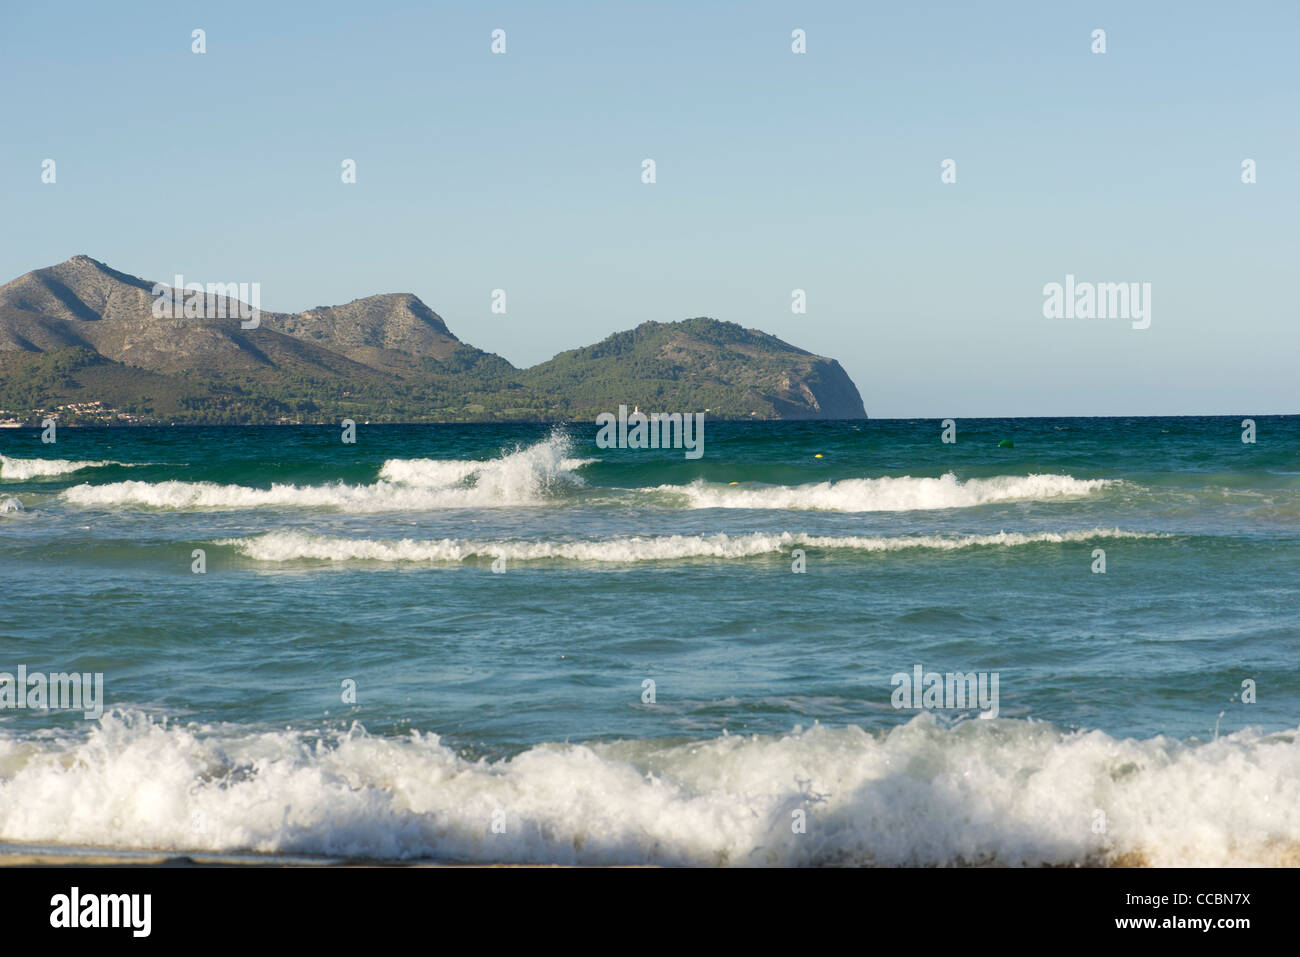 View of ocean, mountain in background - Stock Image